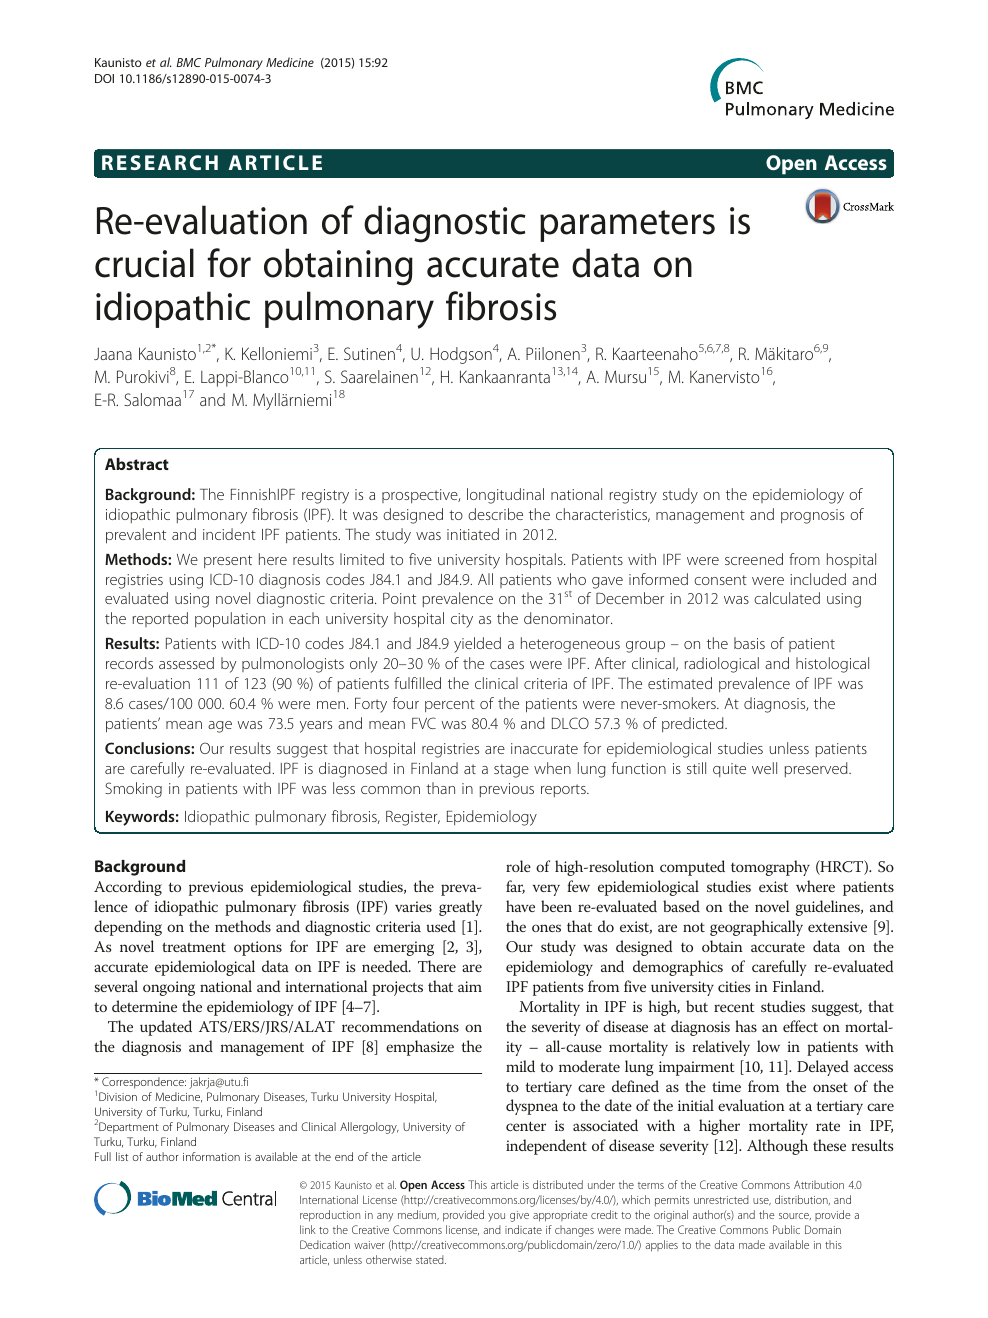 Re-evaluation of diagnostic parameters is crucial for